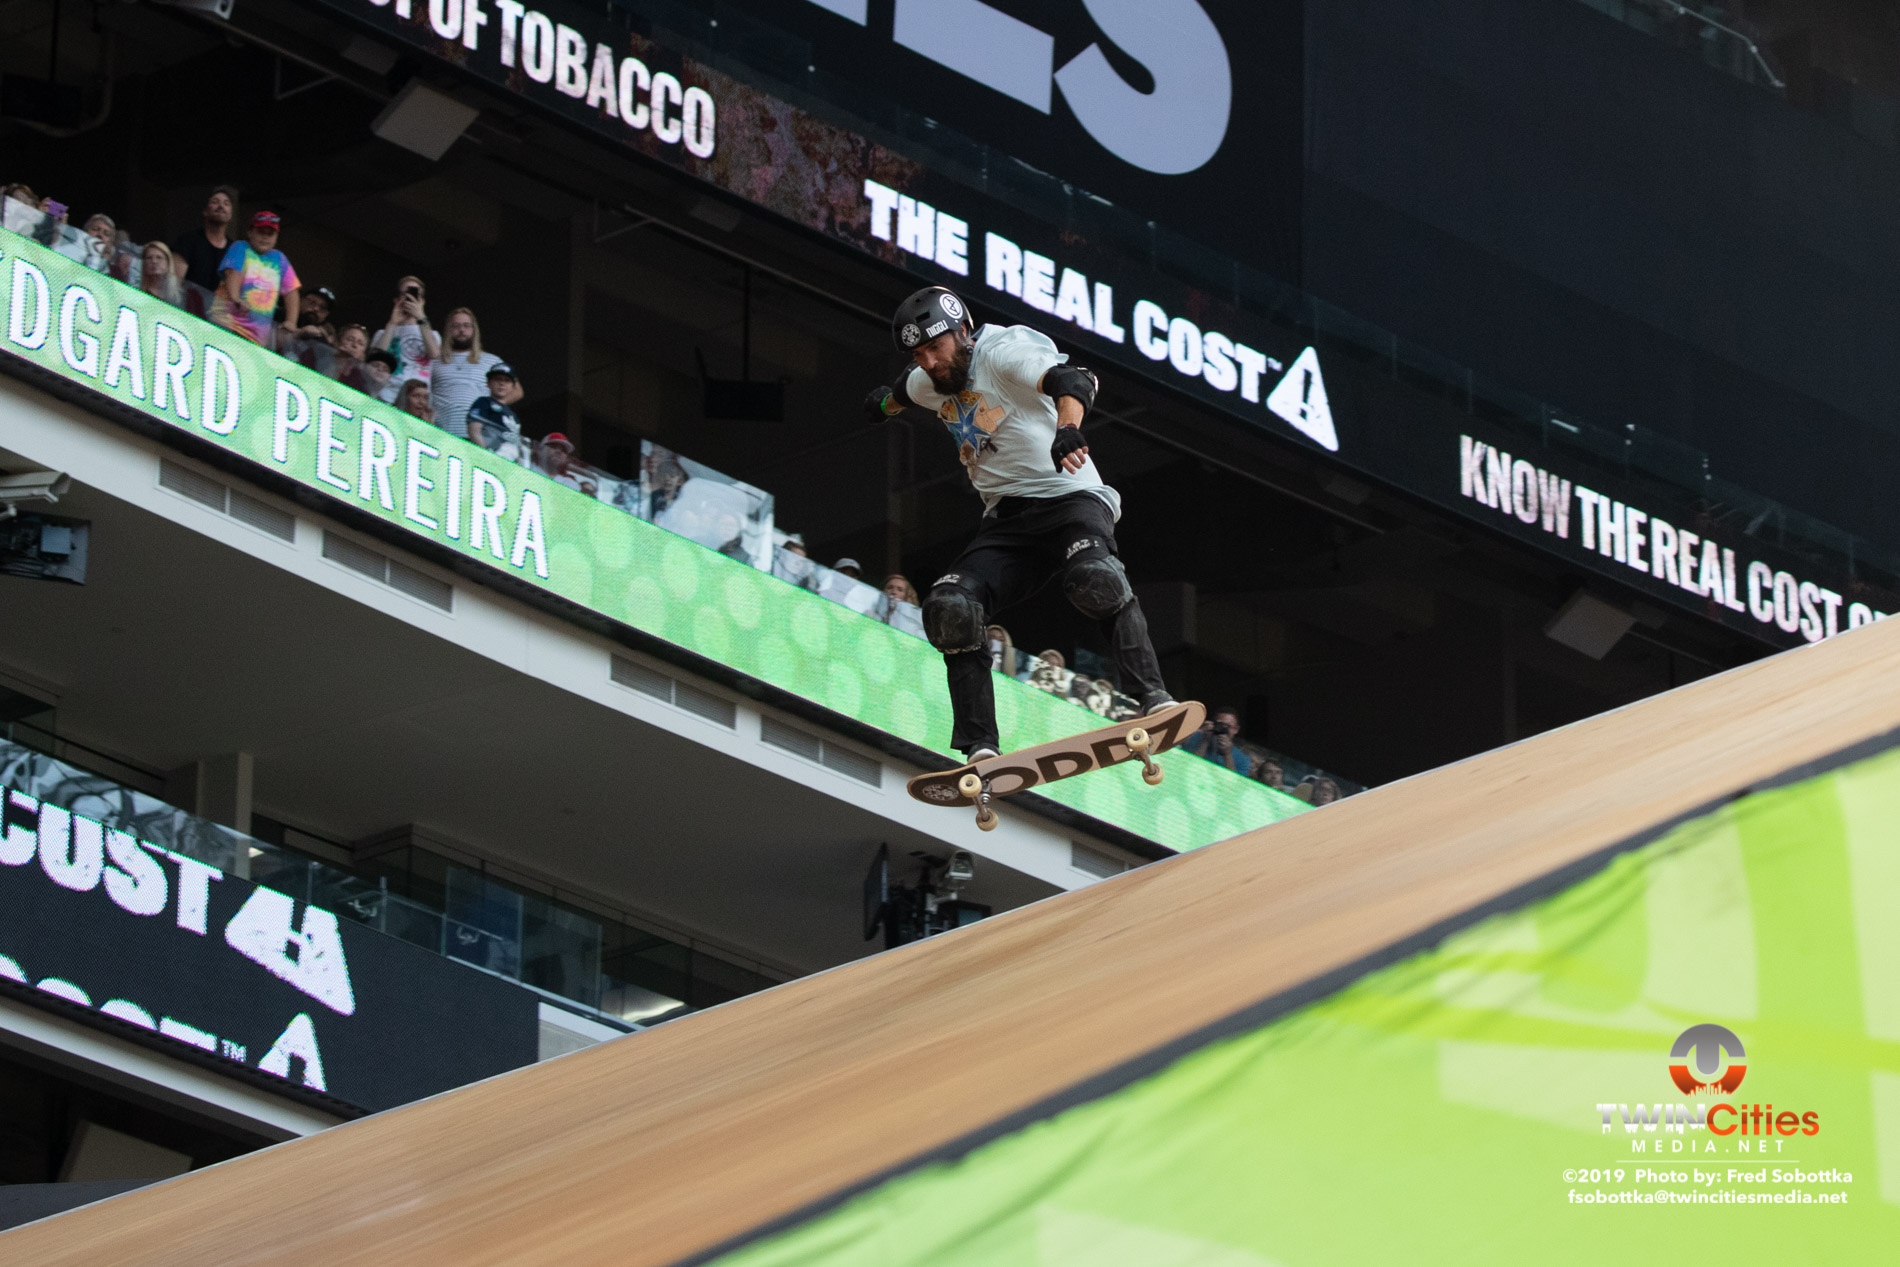 The-Real-Cost-Skateboard-Big-Air-11